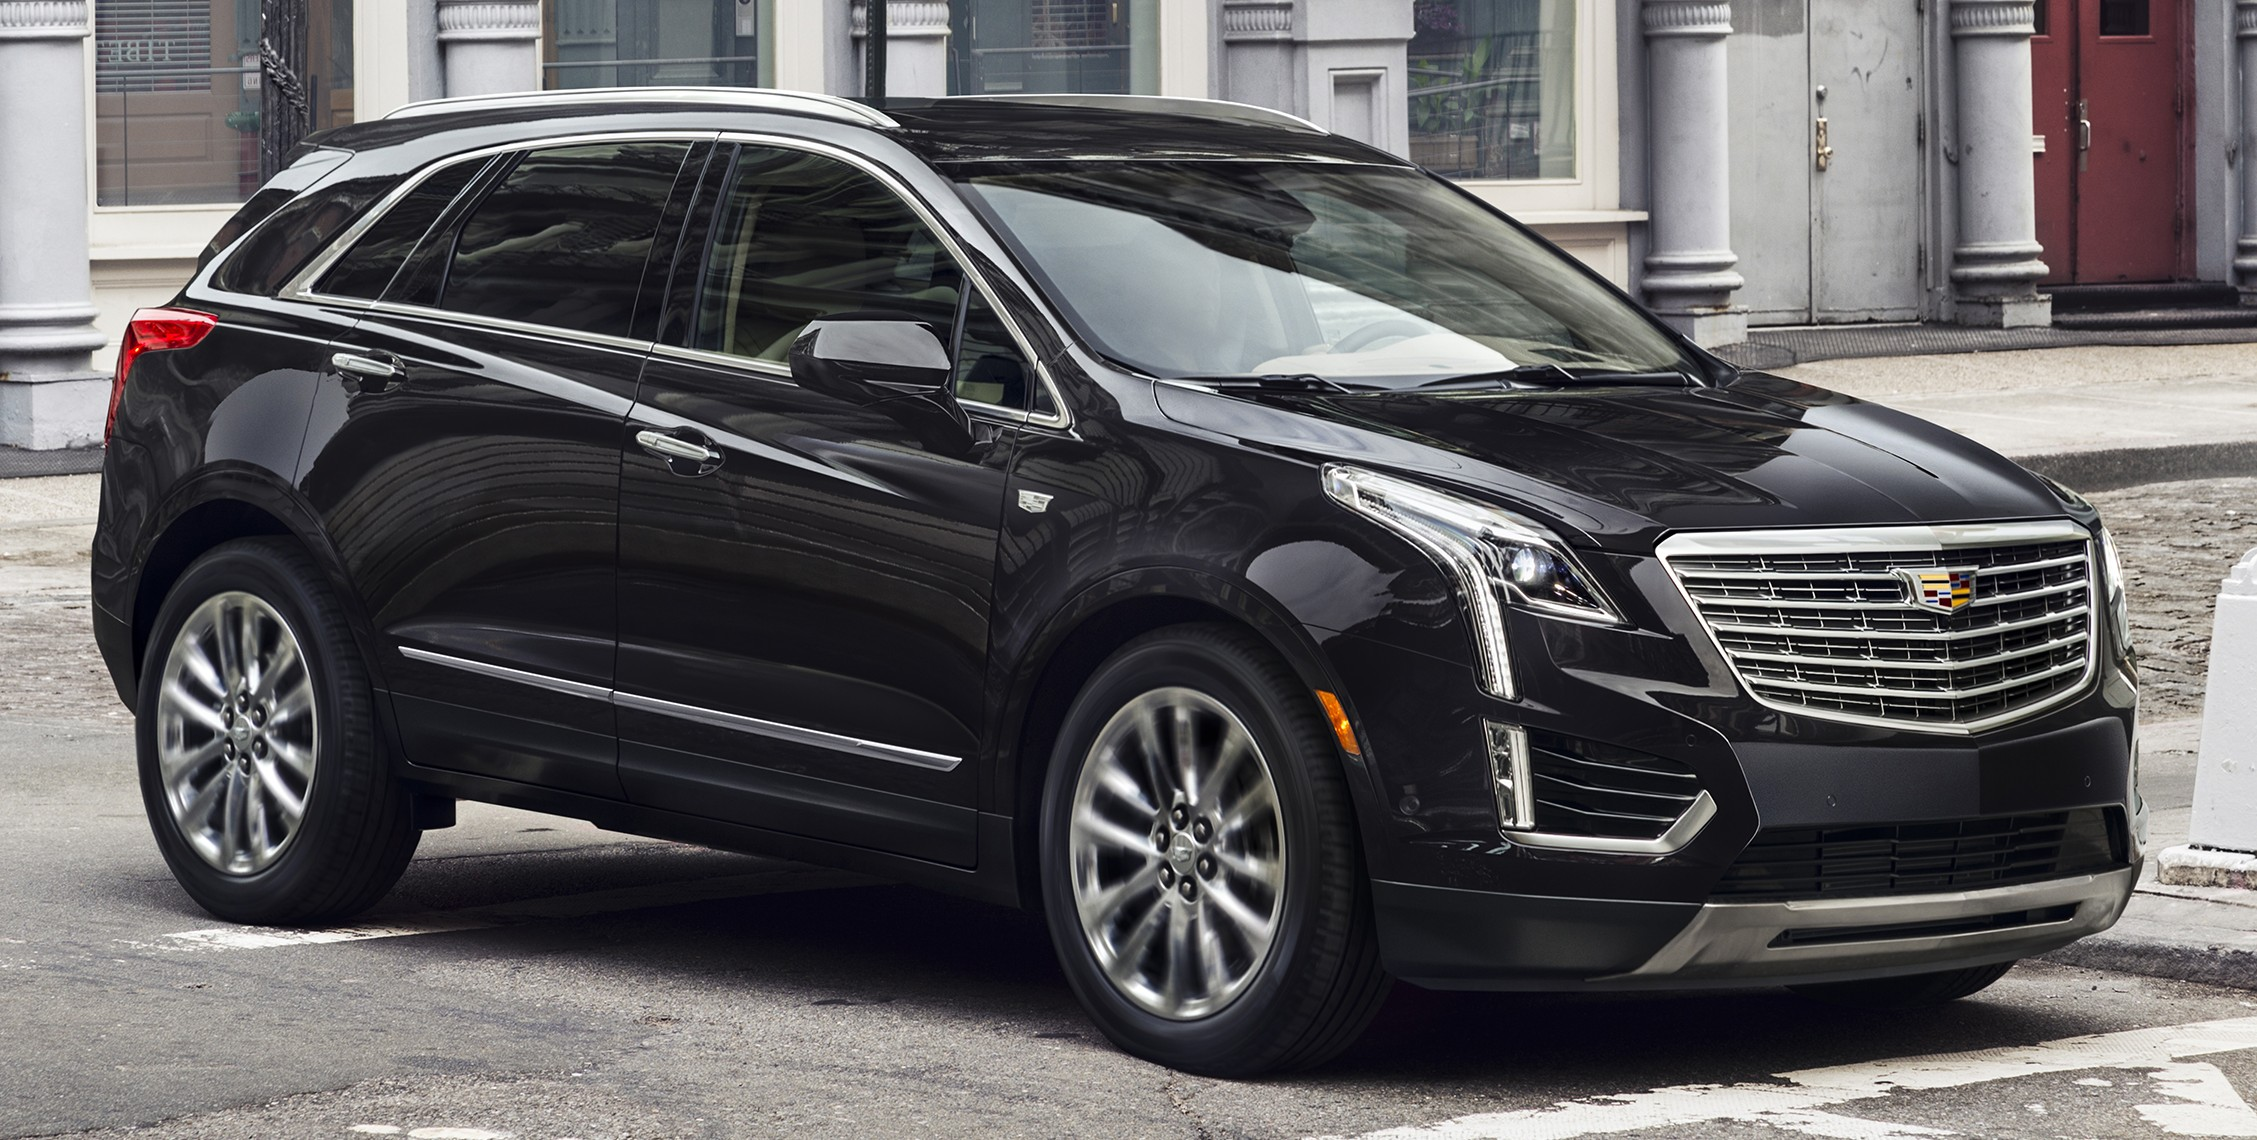 la 2015 cadillac xt5 officially revealed prior to debut. Black Bedroom Furniture Sets. Home Design Ideas